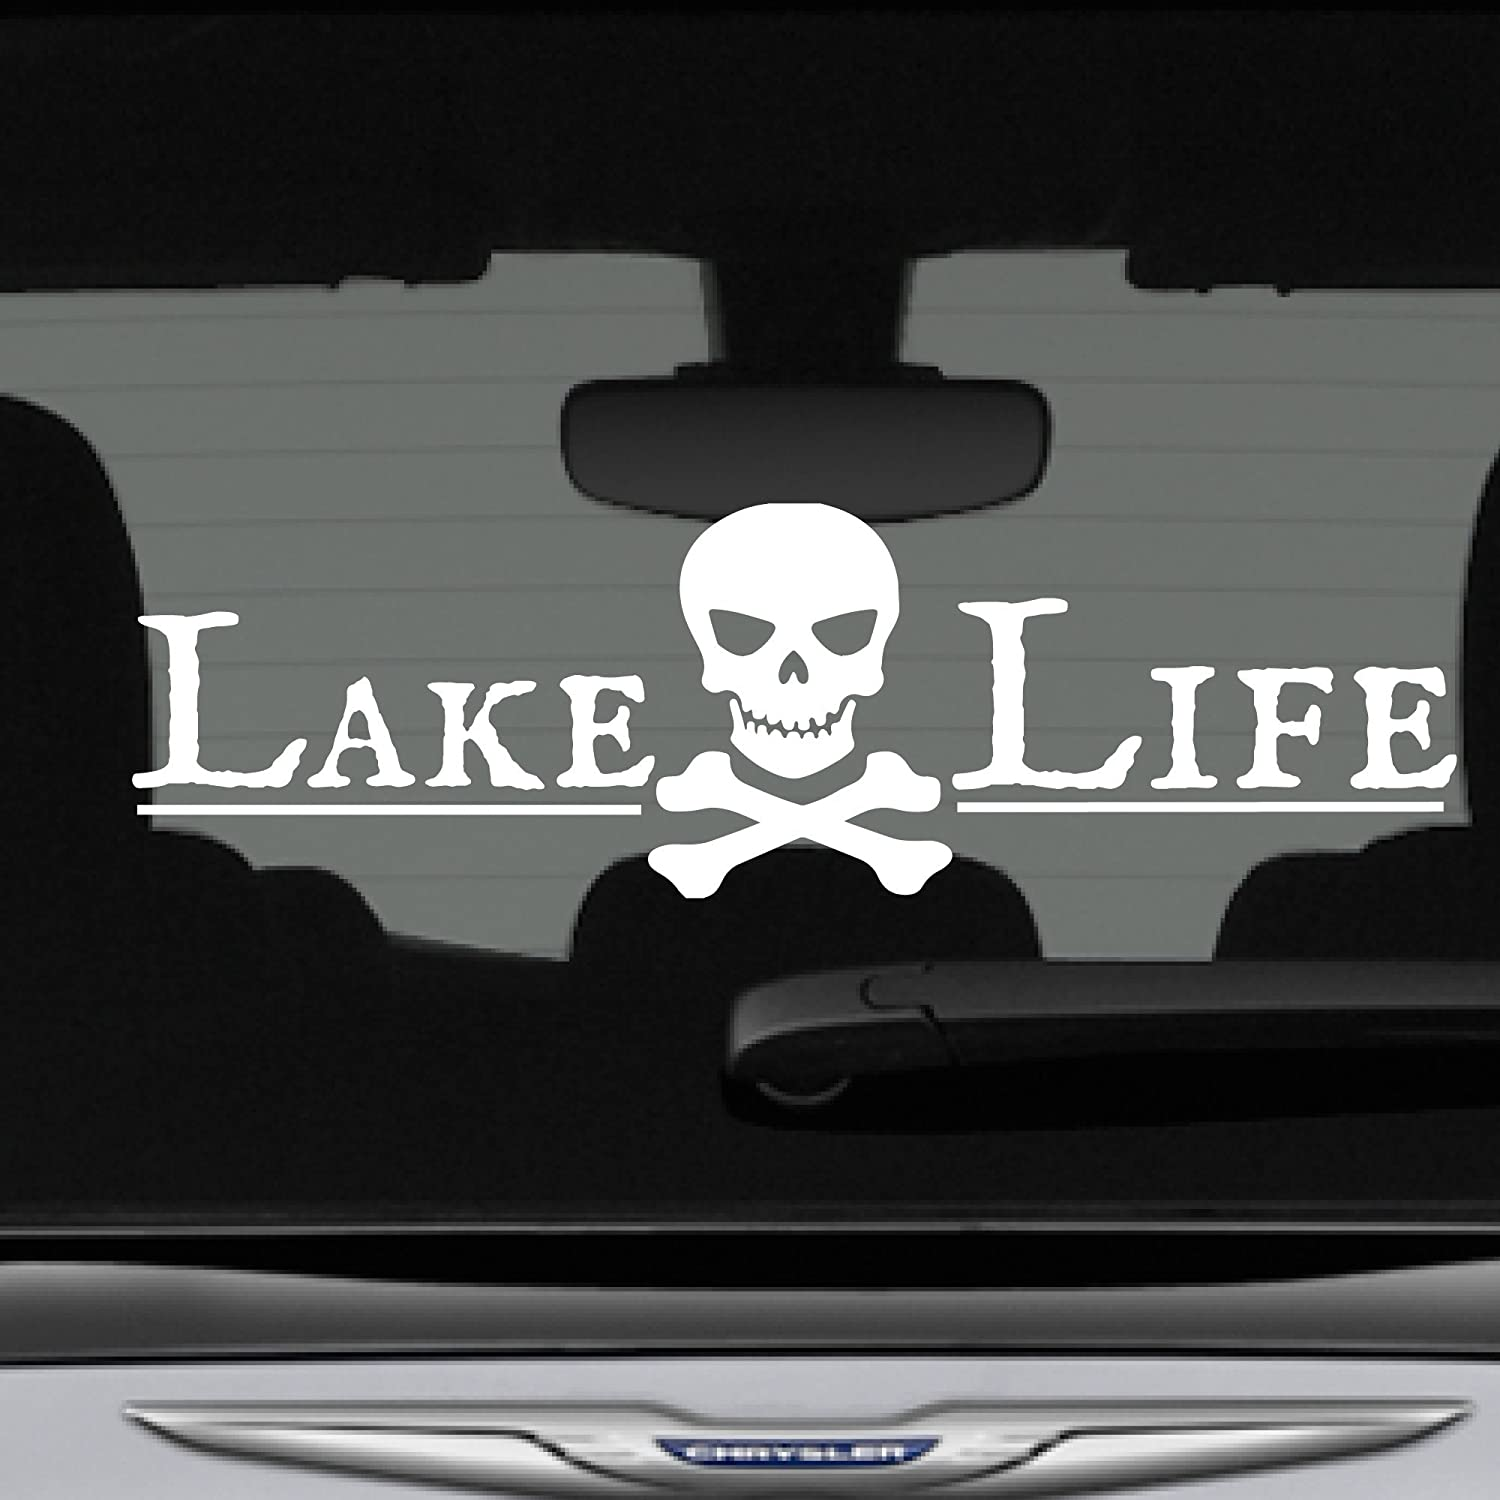 Craftelife lake life decal bumper sticker pirate skull crossbones 12 in x 3 in fits car truck suv boat motorcycle and more premium vinyl car